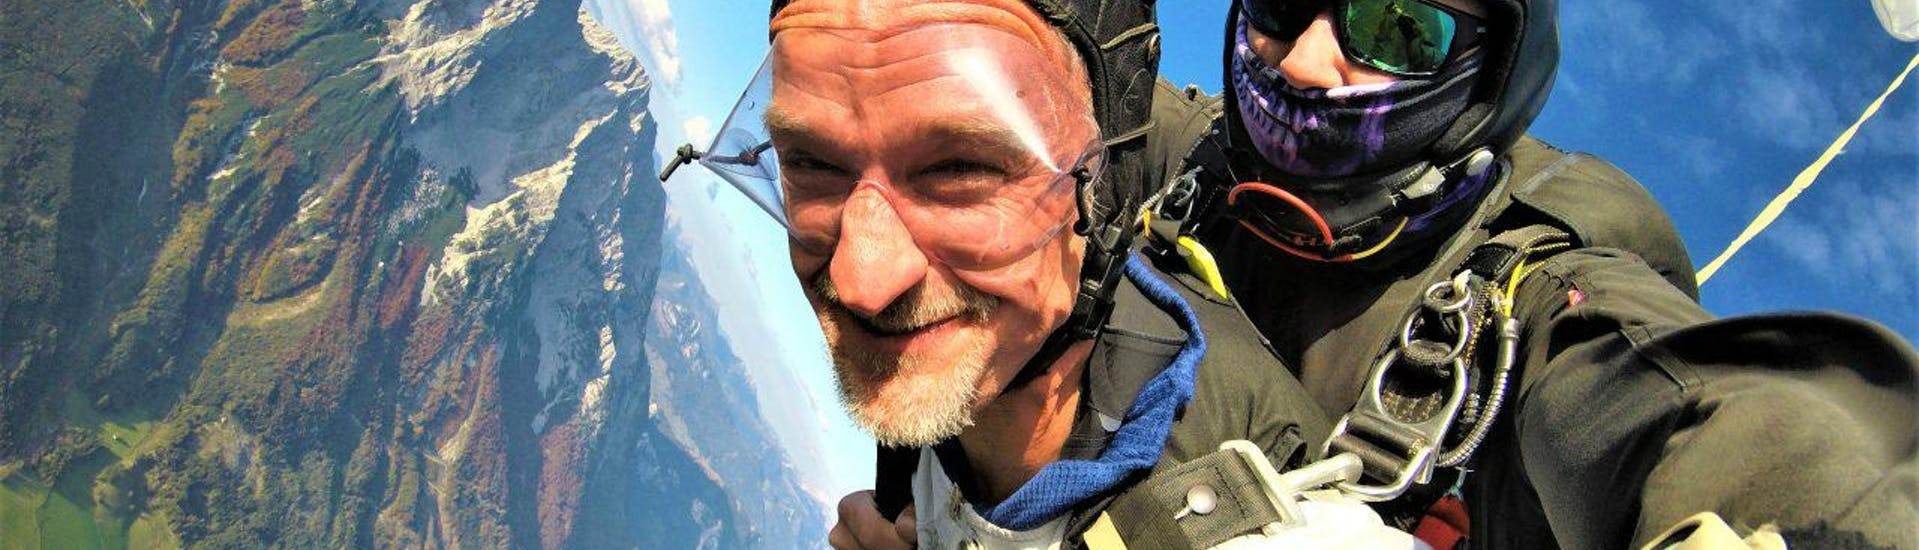 Tandem Skydive from 4000m - Lienz